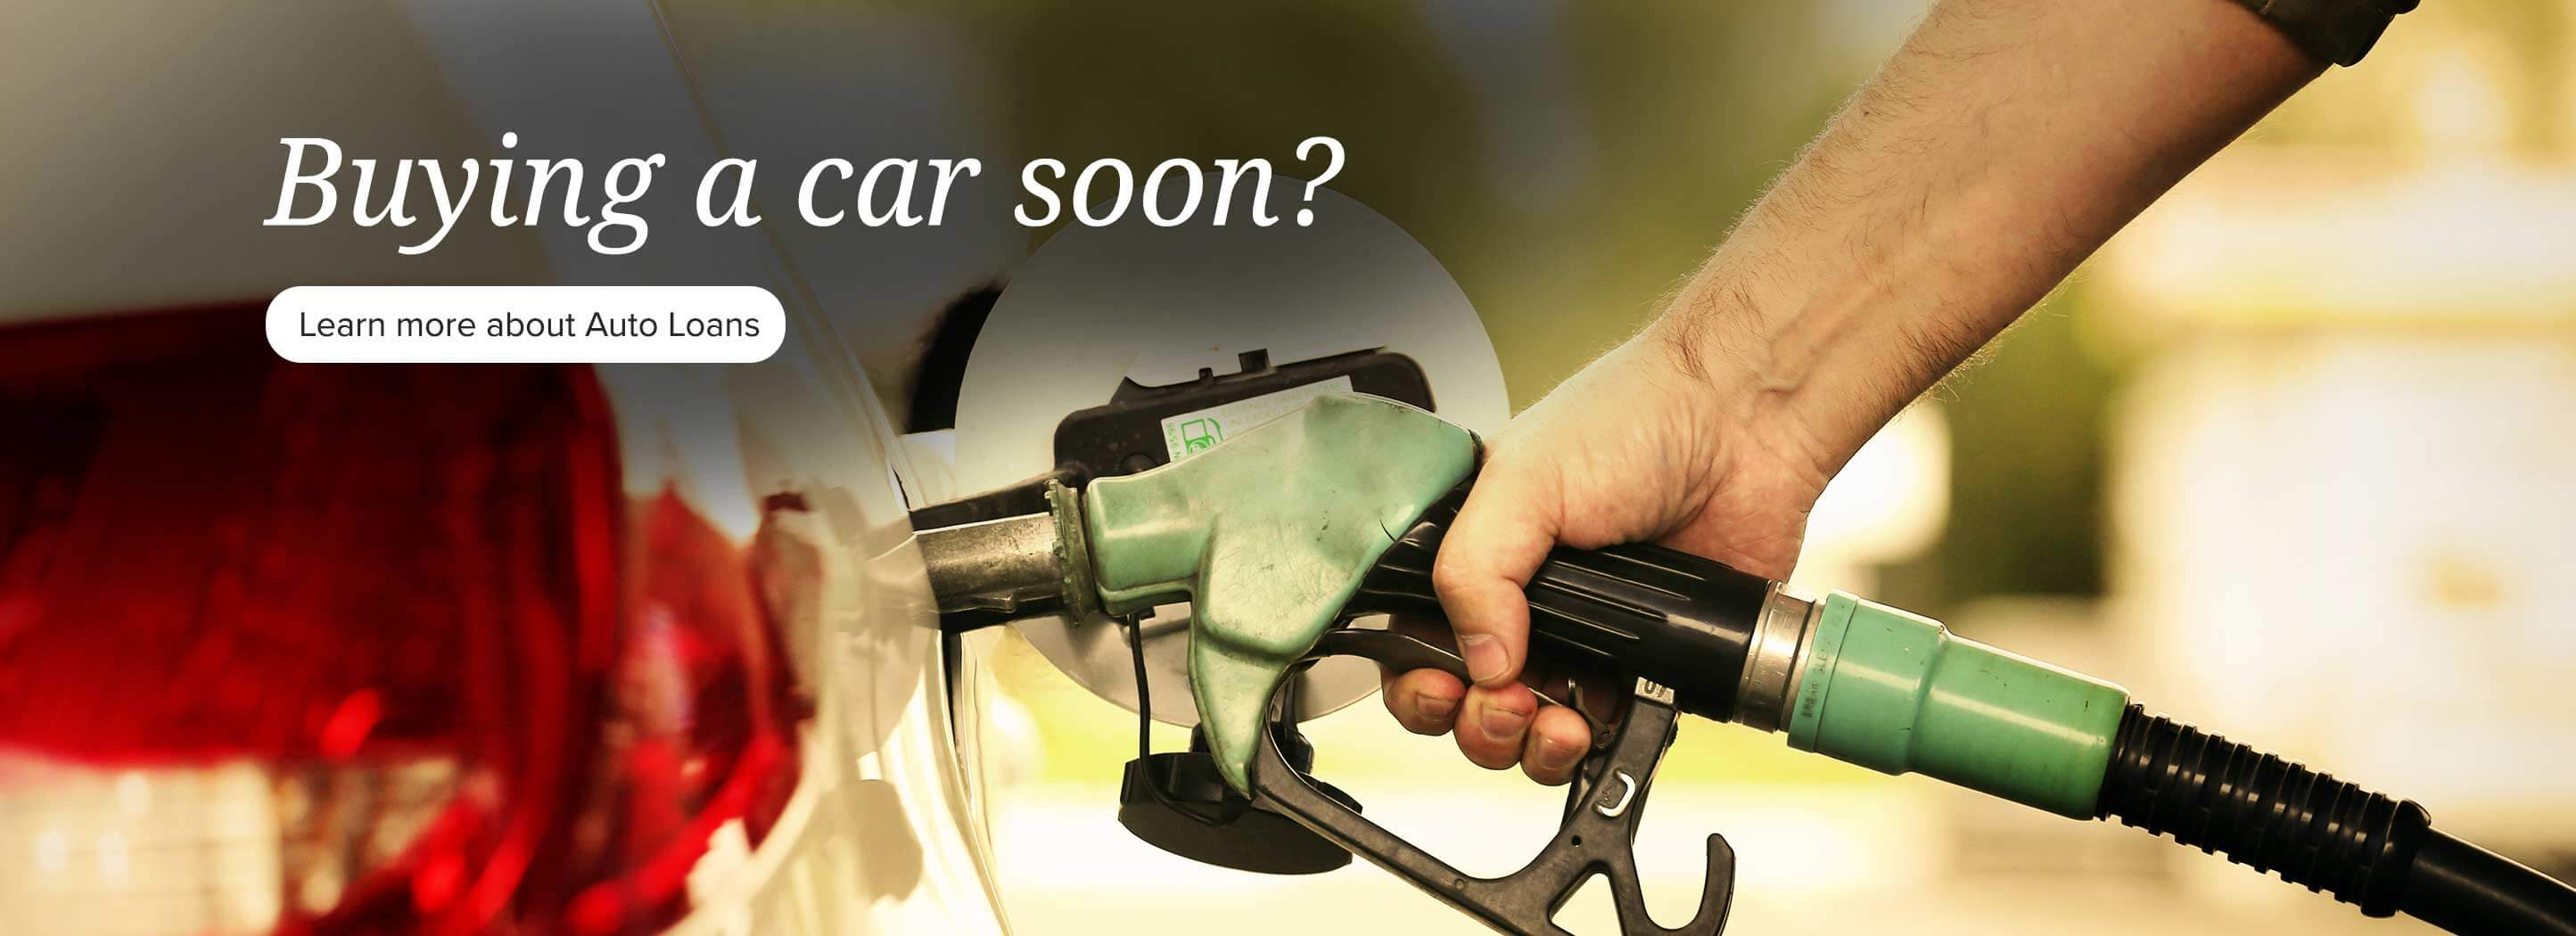 Buying a car soon? Learn more about auto loans